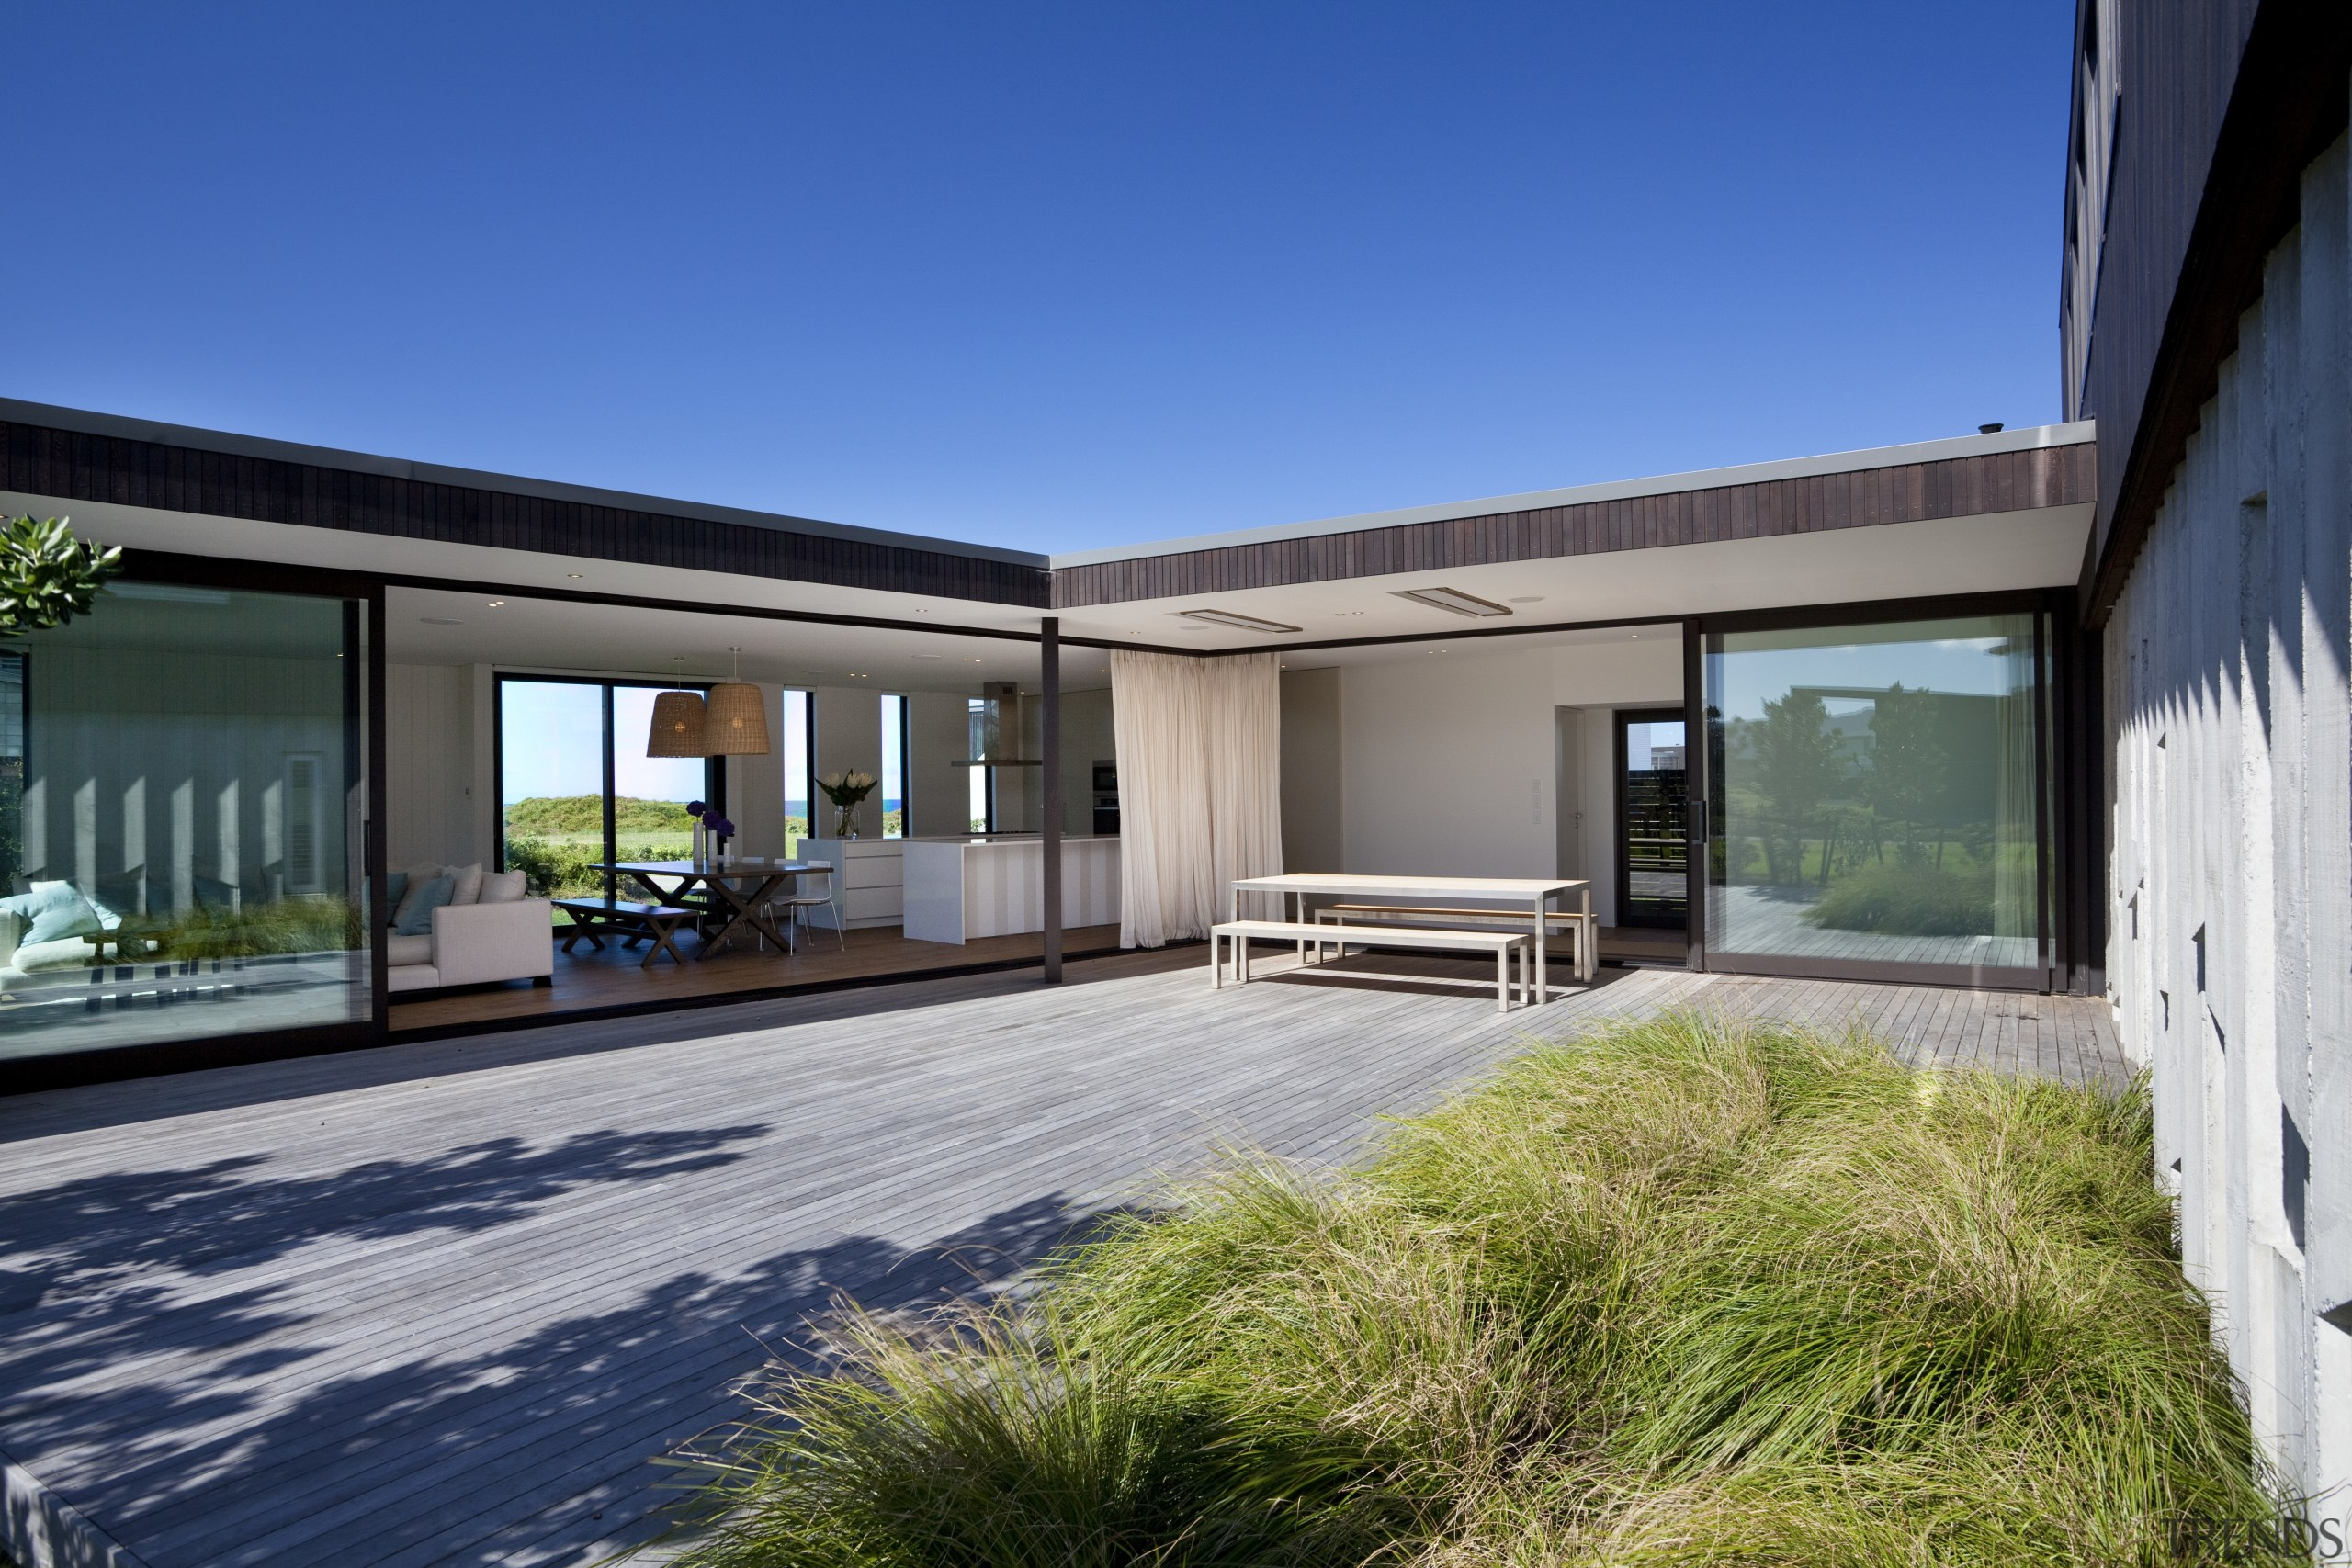 Ponting Fitzgerald-designed beach house - Ponting Fitzgerald-designed beach architecture, estate, facade, home, house, property, real estate, window, gray, blue